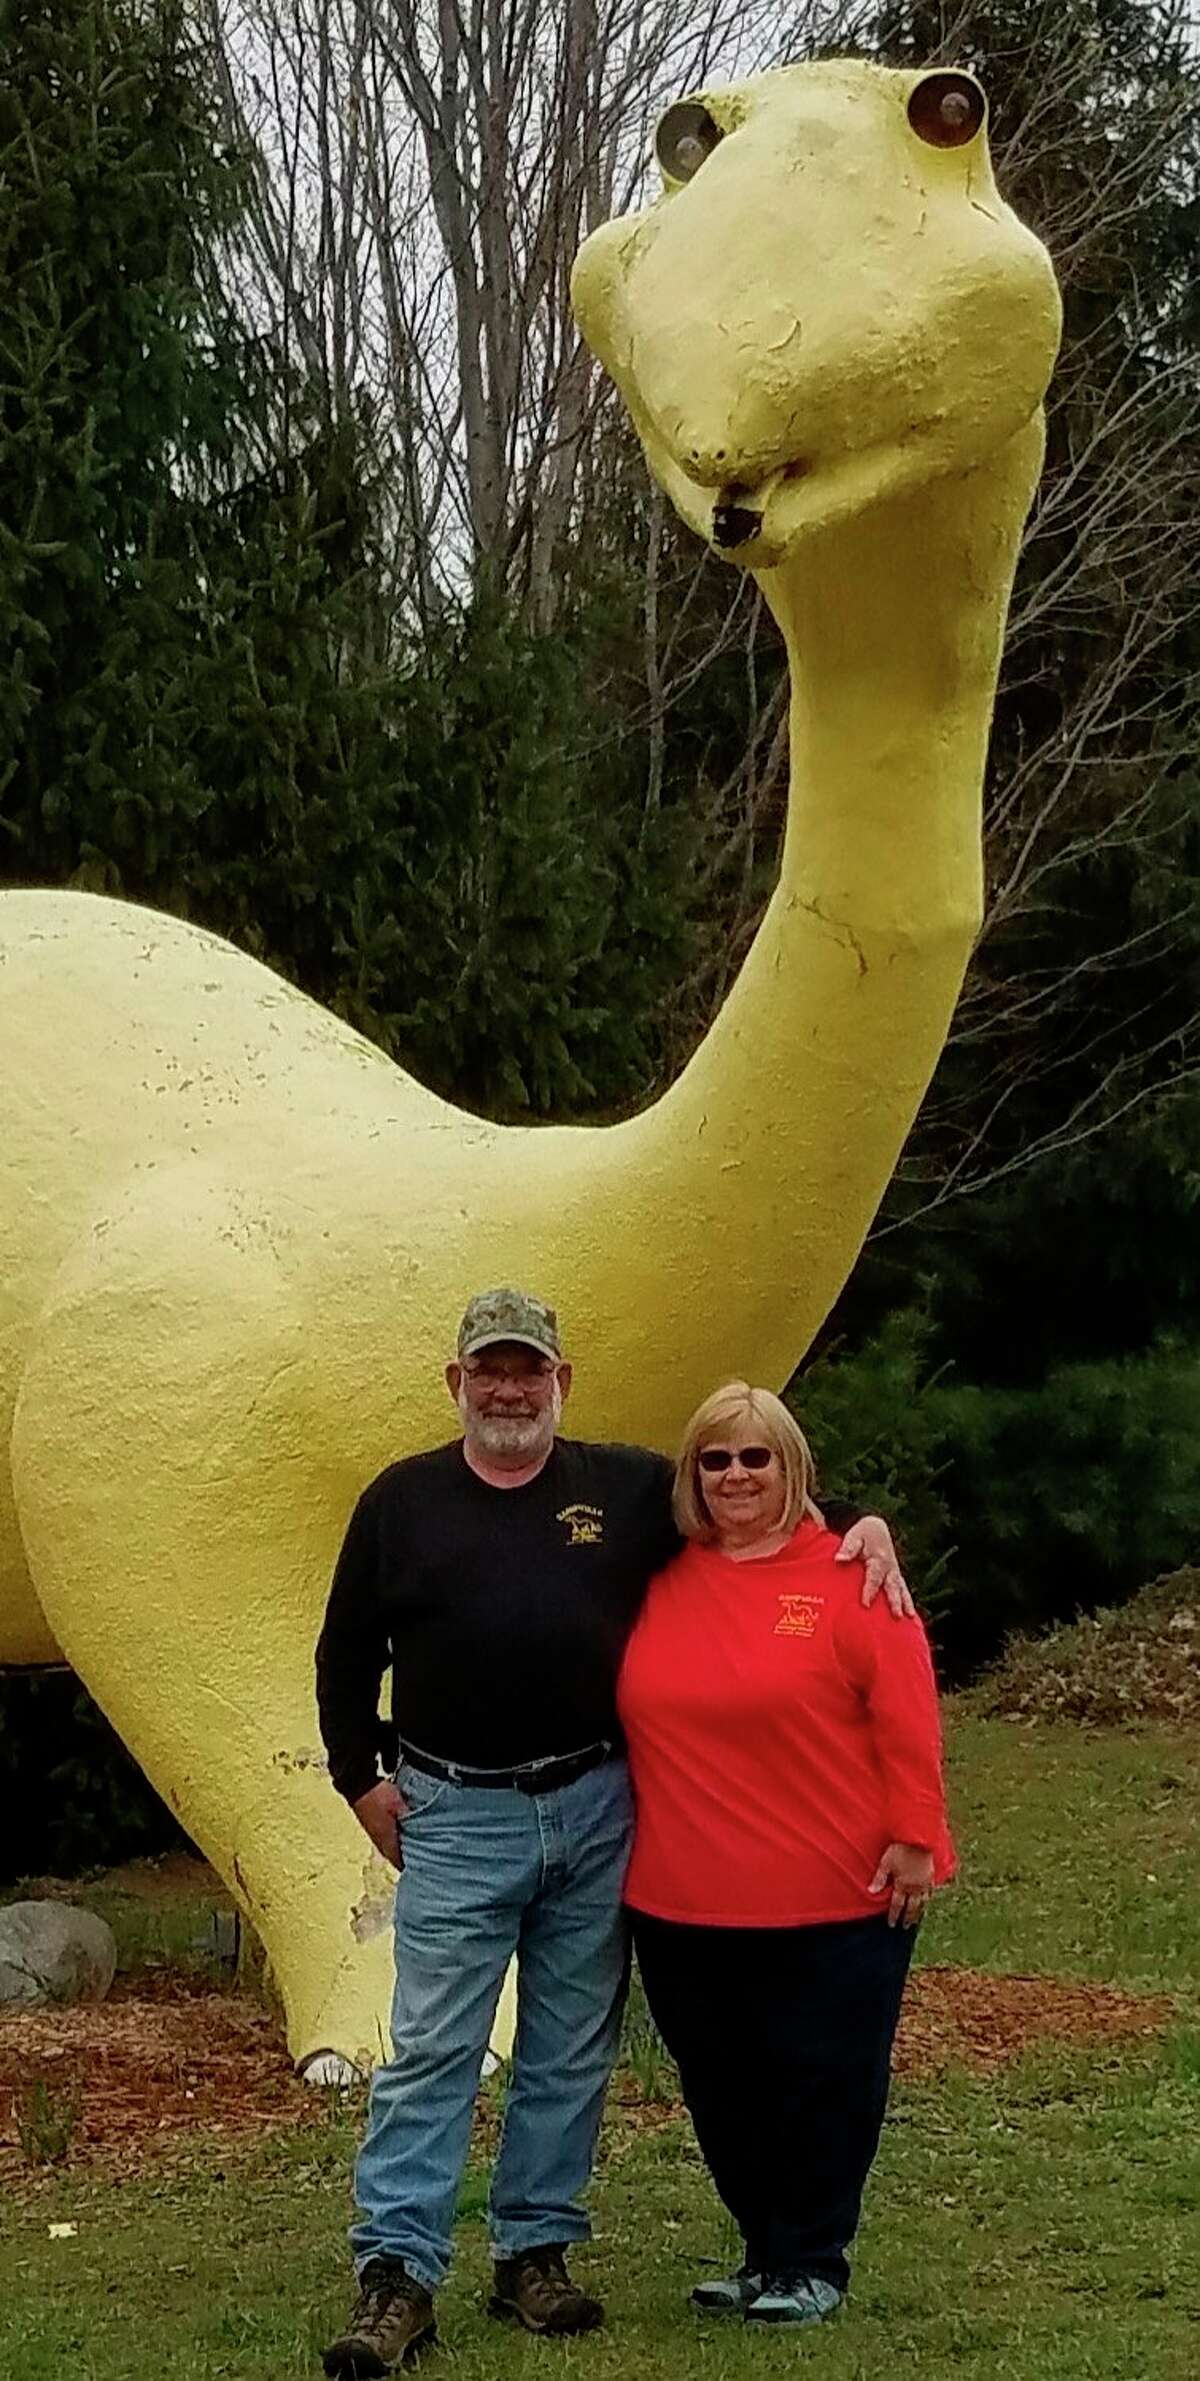 Ken and Becky Wethers are owners of Kampvilla RV Park located on U.S. 31 north of Bear Lake. (Courtesy photo)